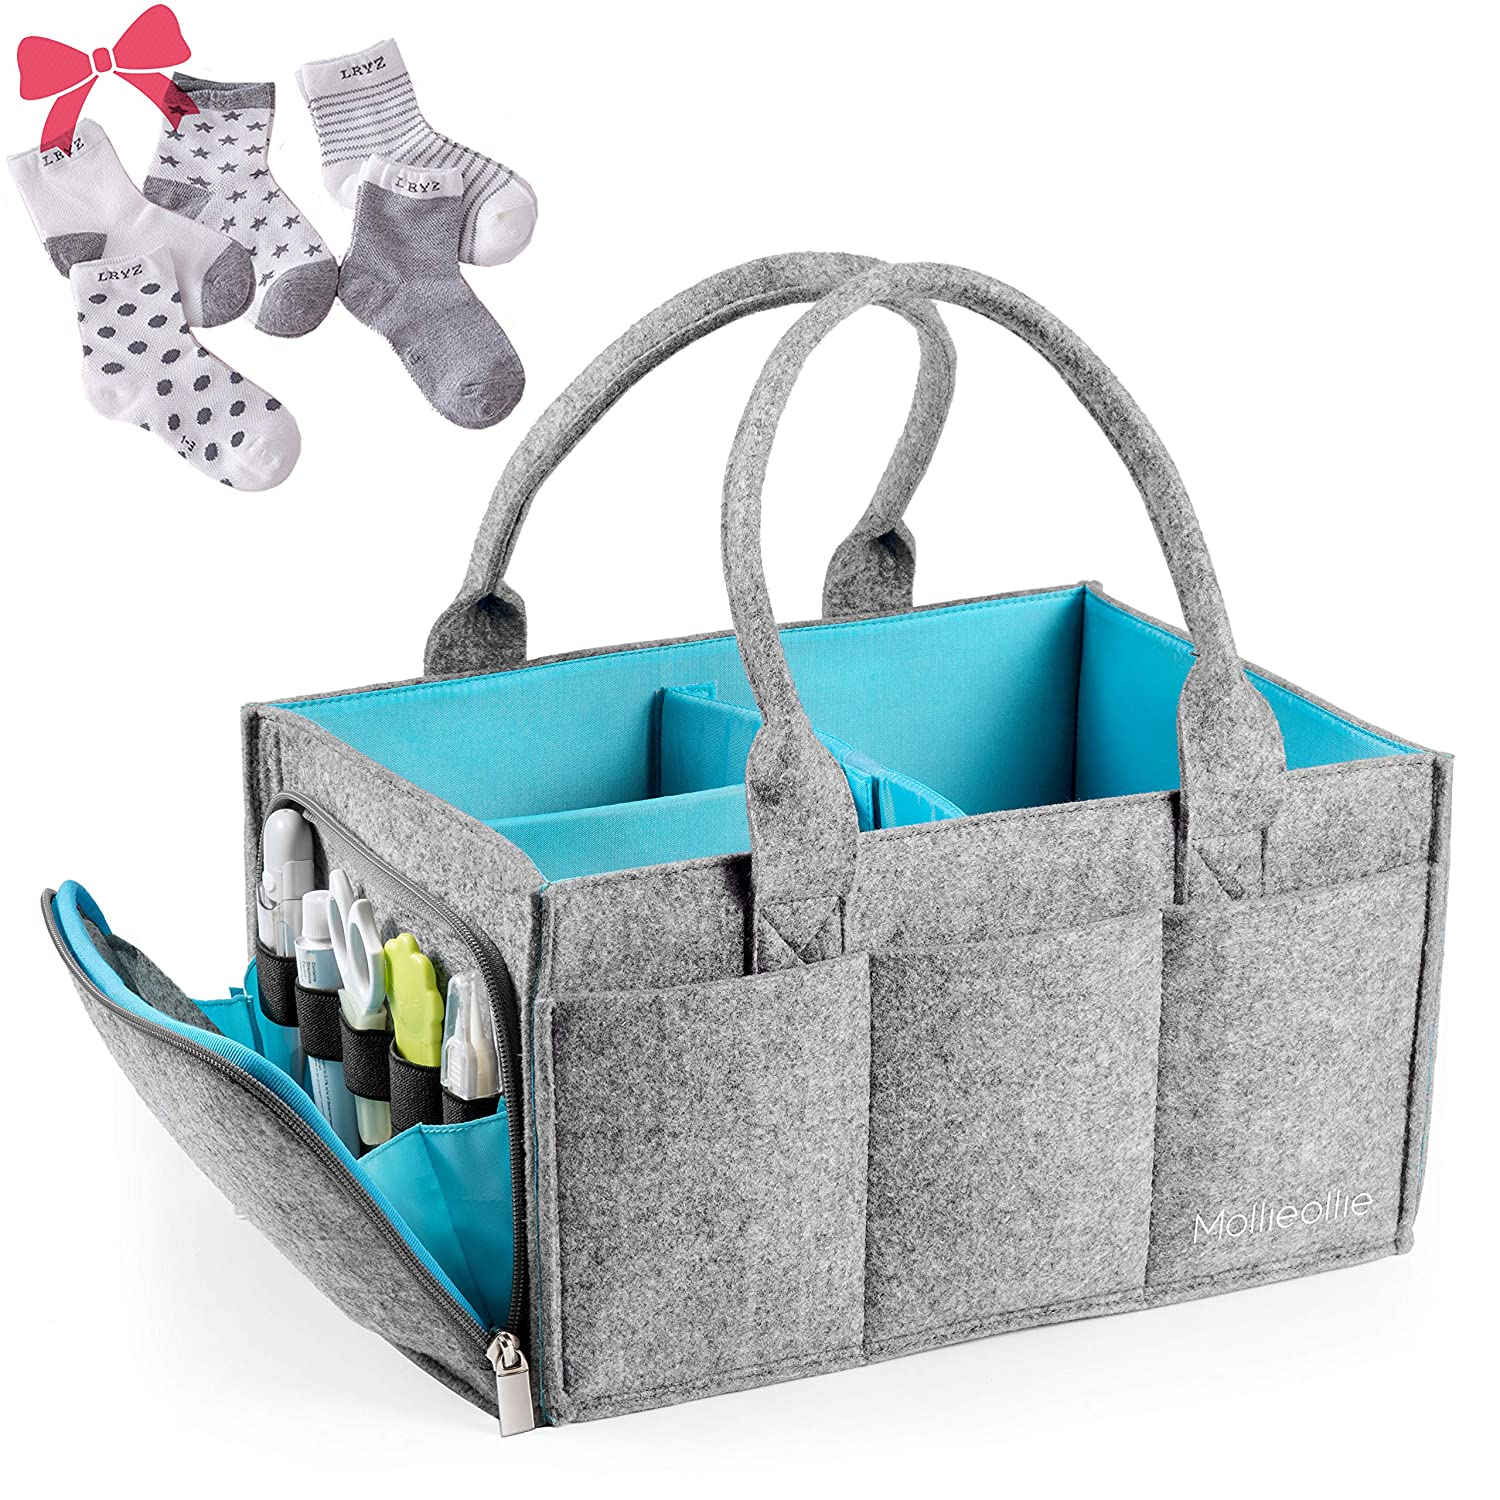 The Premium Baby Diaper Caddy Organizer travel product recommended by Ivy Teo on Lifney.